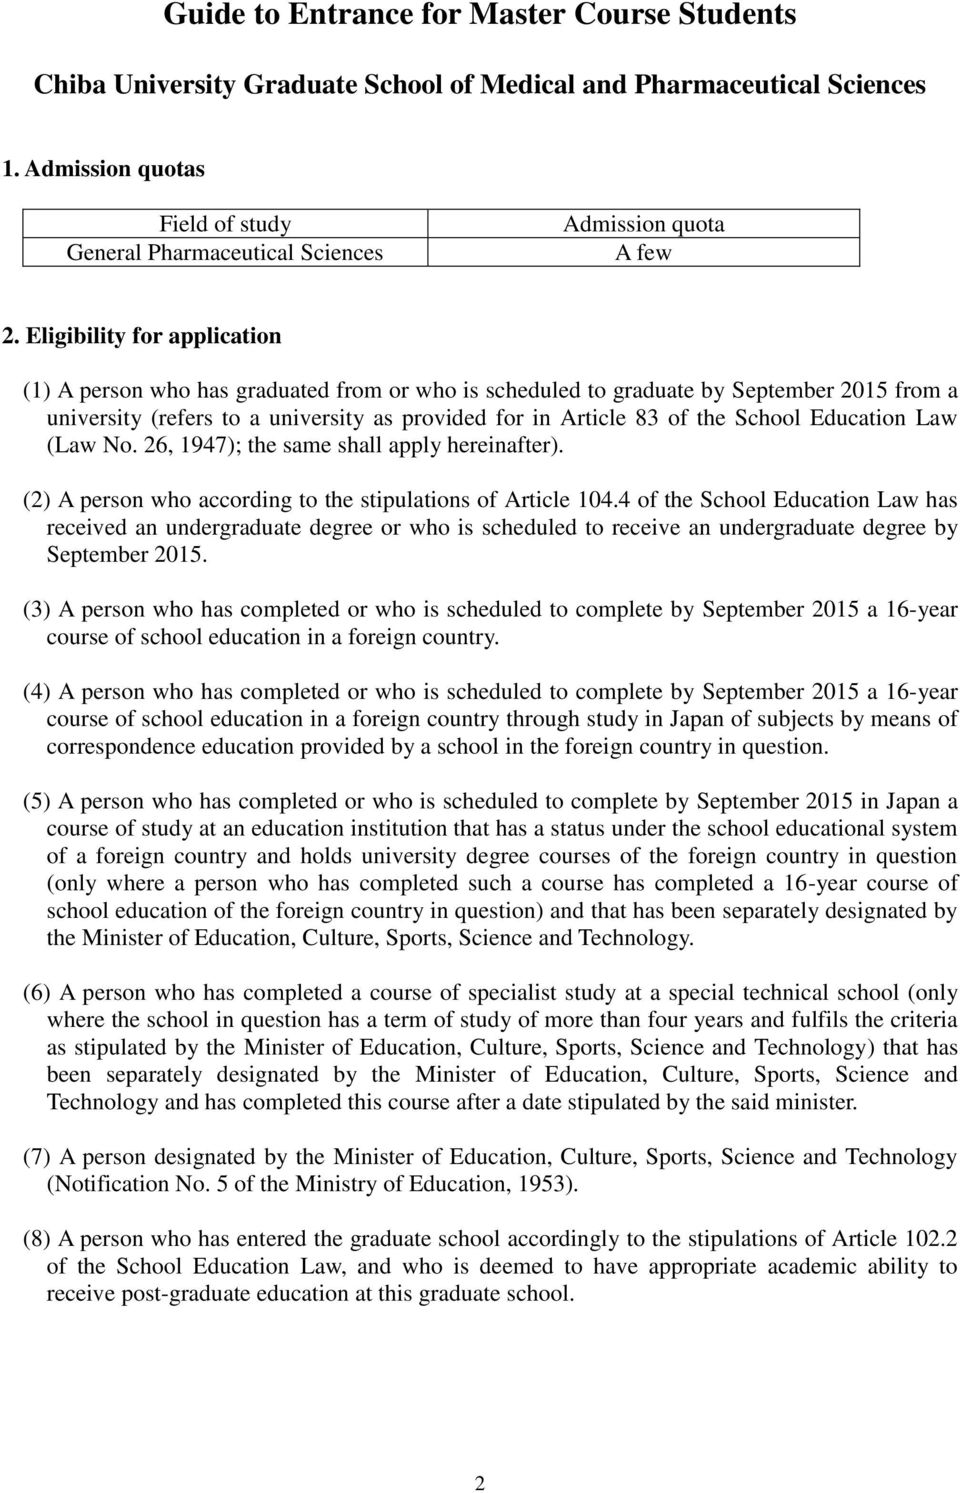 Eligibility for application (1) A person who has graduated from or who is scheduled to graduate by September 2015 from a university (refers to a university as provided for in Article 83 of the School